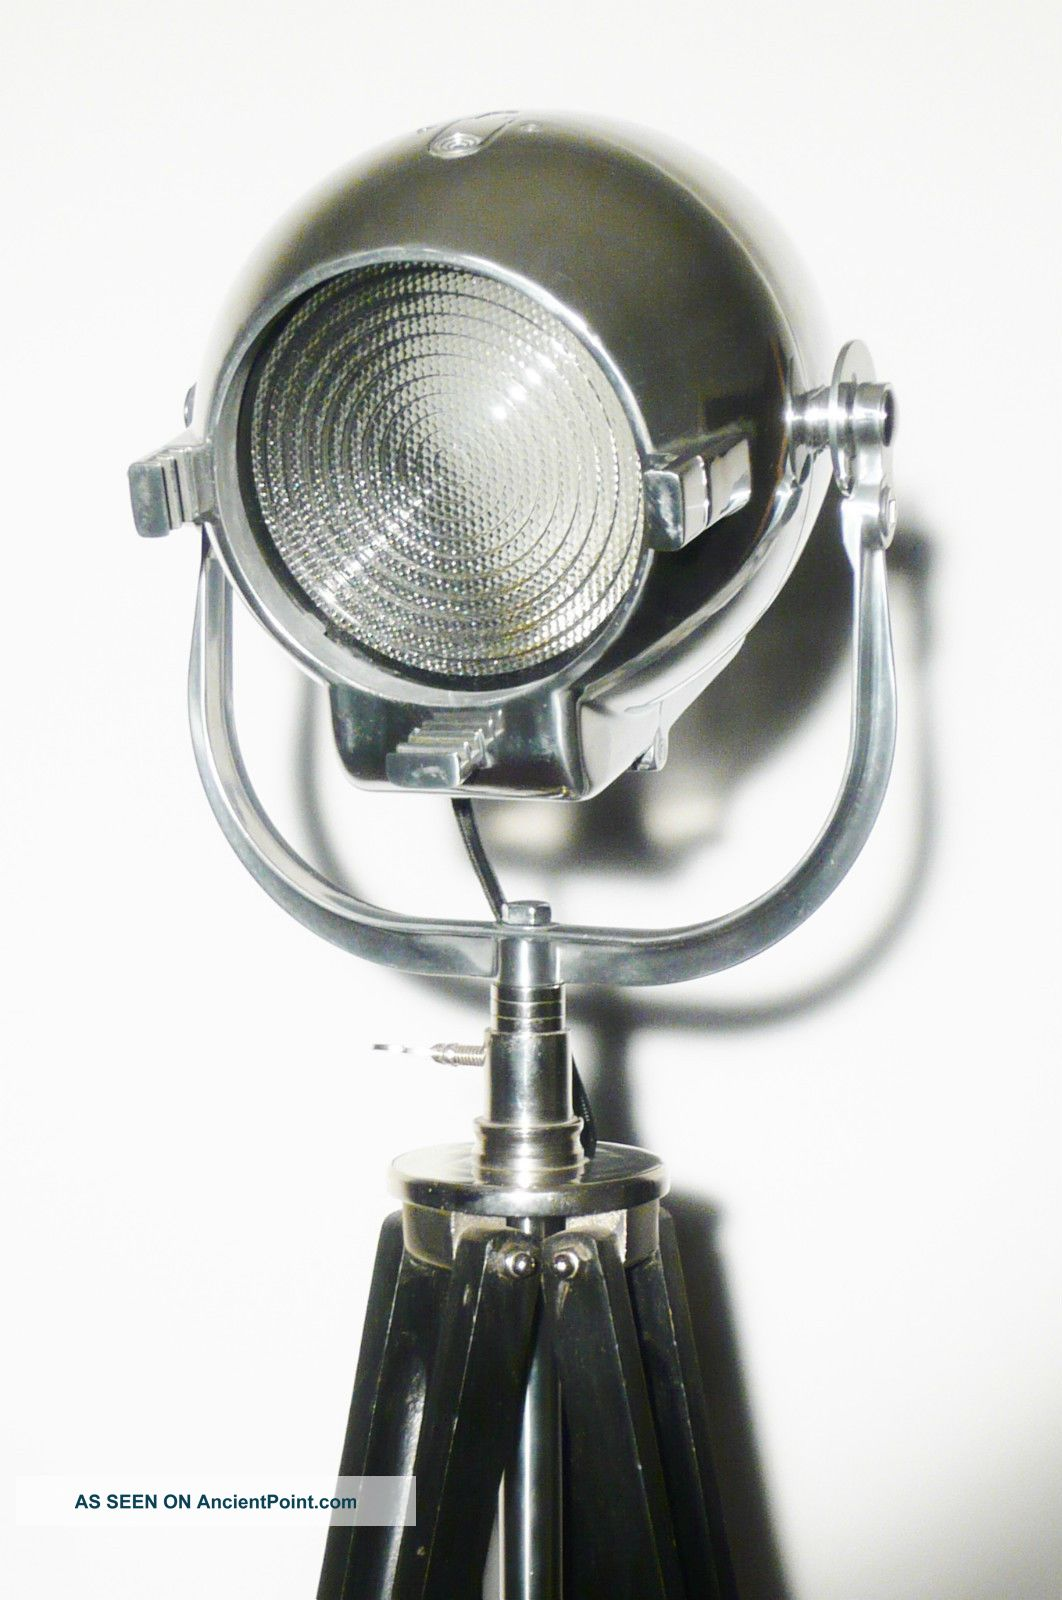 Vintage Theatre Film Light Industrial Mid Century Antique Steampunk Floor Lamp Uncategorized photo